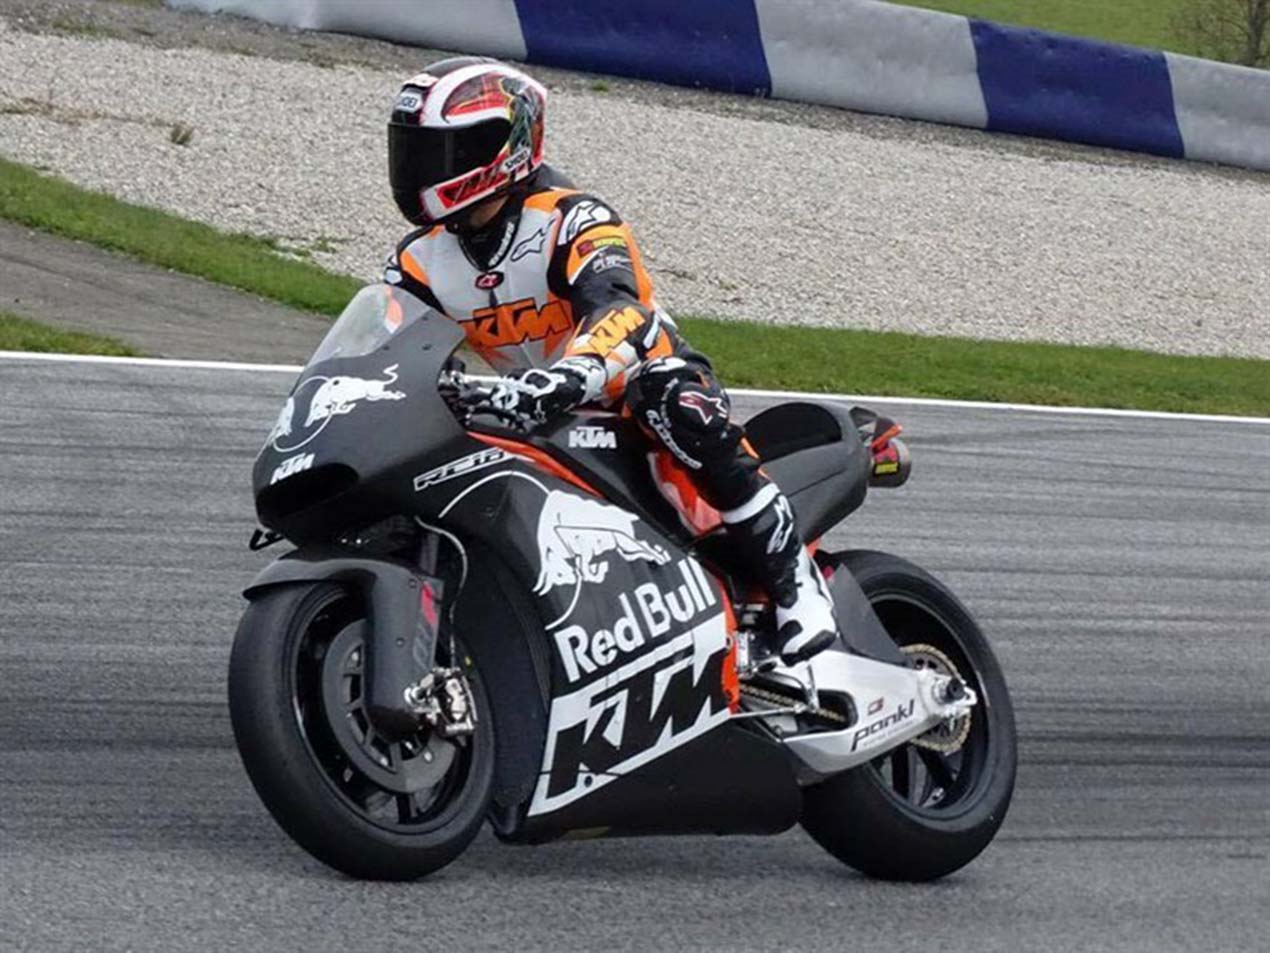 First Photos of the KTM RC16 MotoGP Race Bike